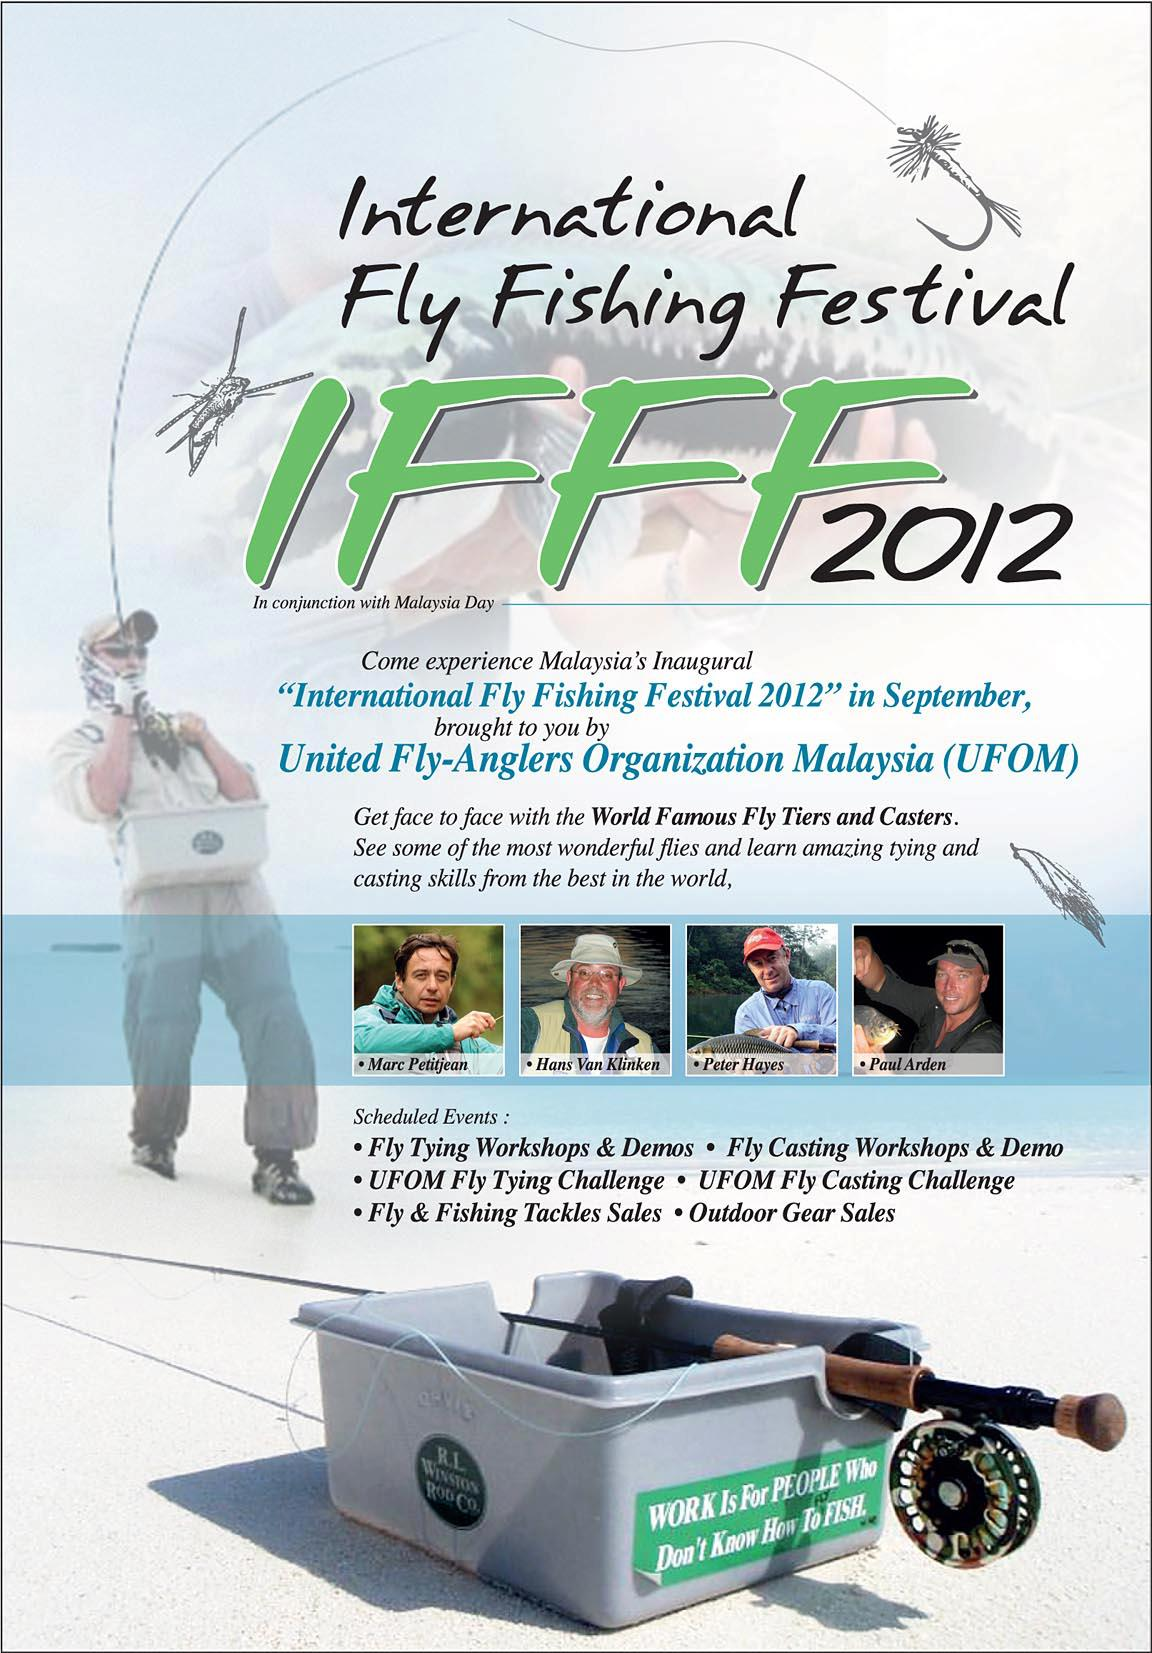 The International Fly Fishing Festival: Sep 16-17, 2012